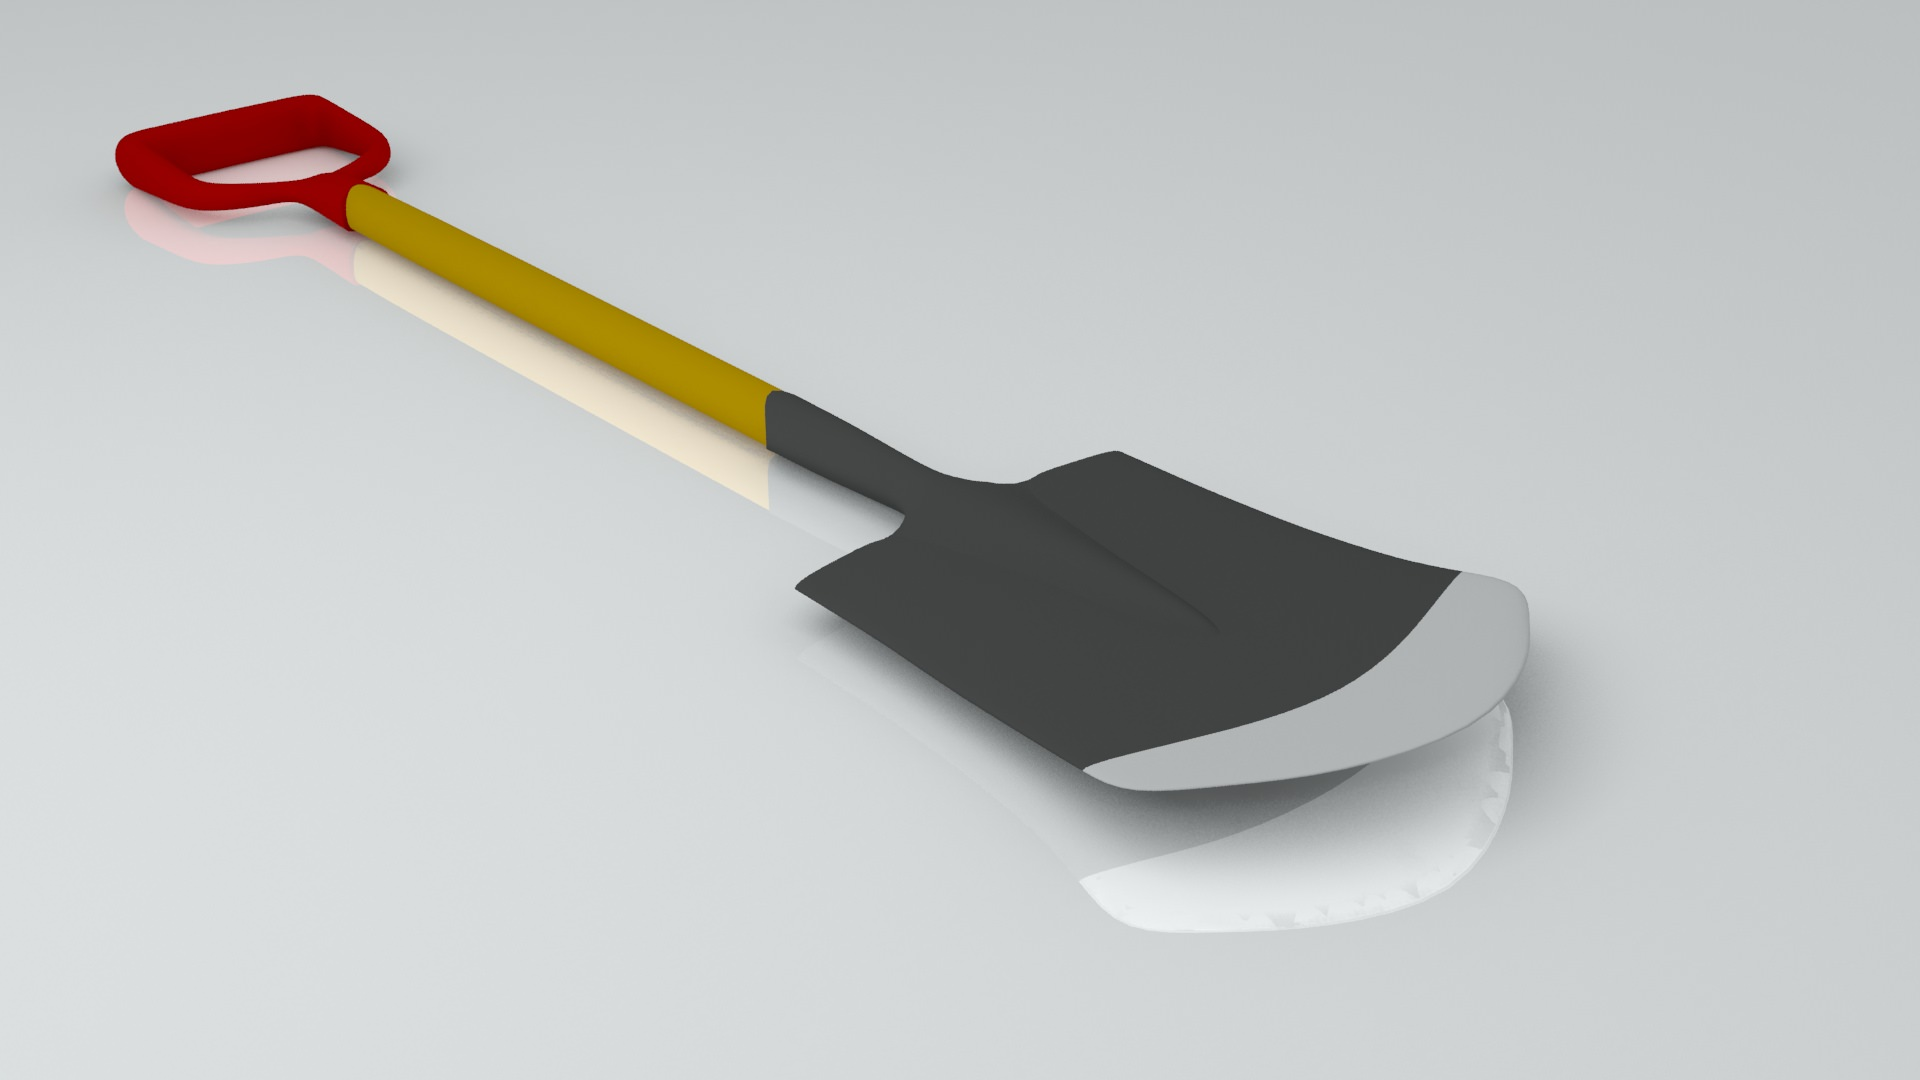 Shovel 3d model 3ds for Gardening tools 3d model